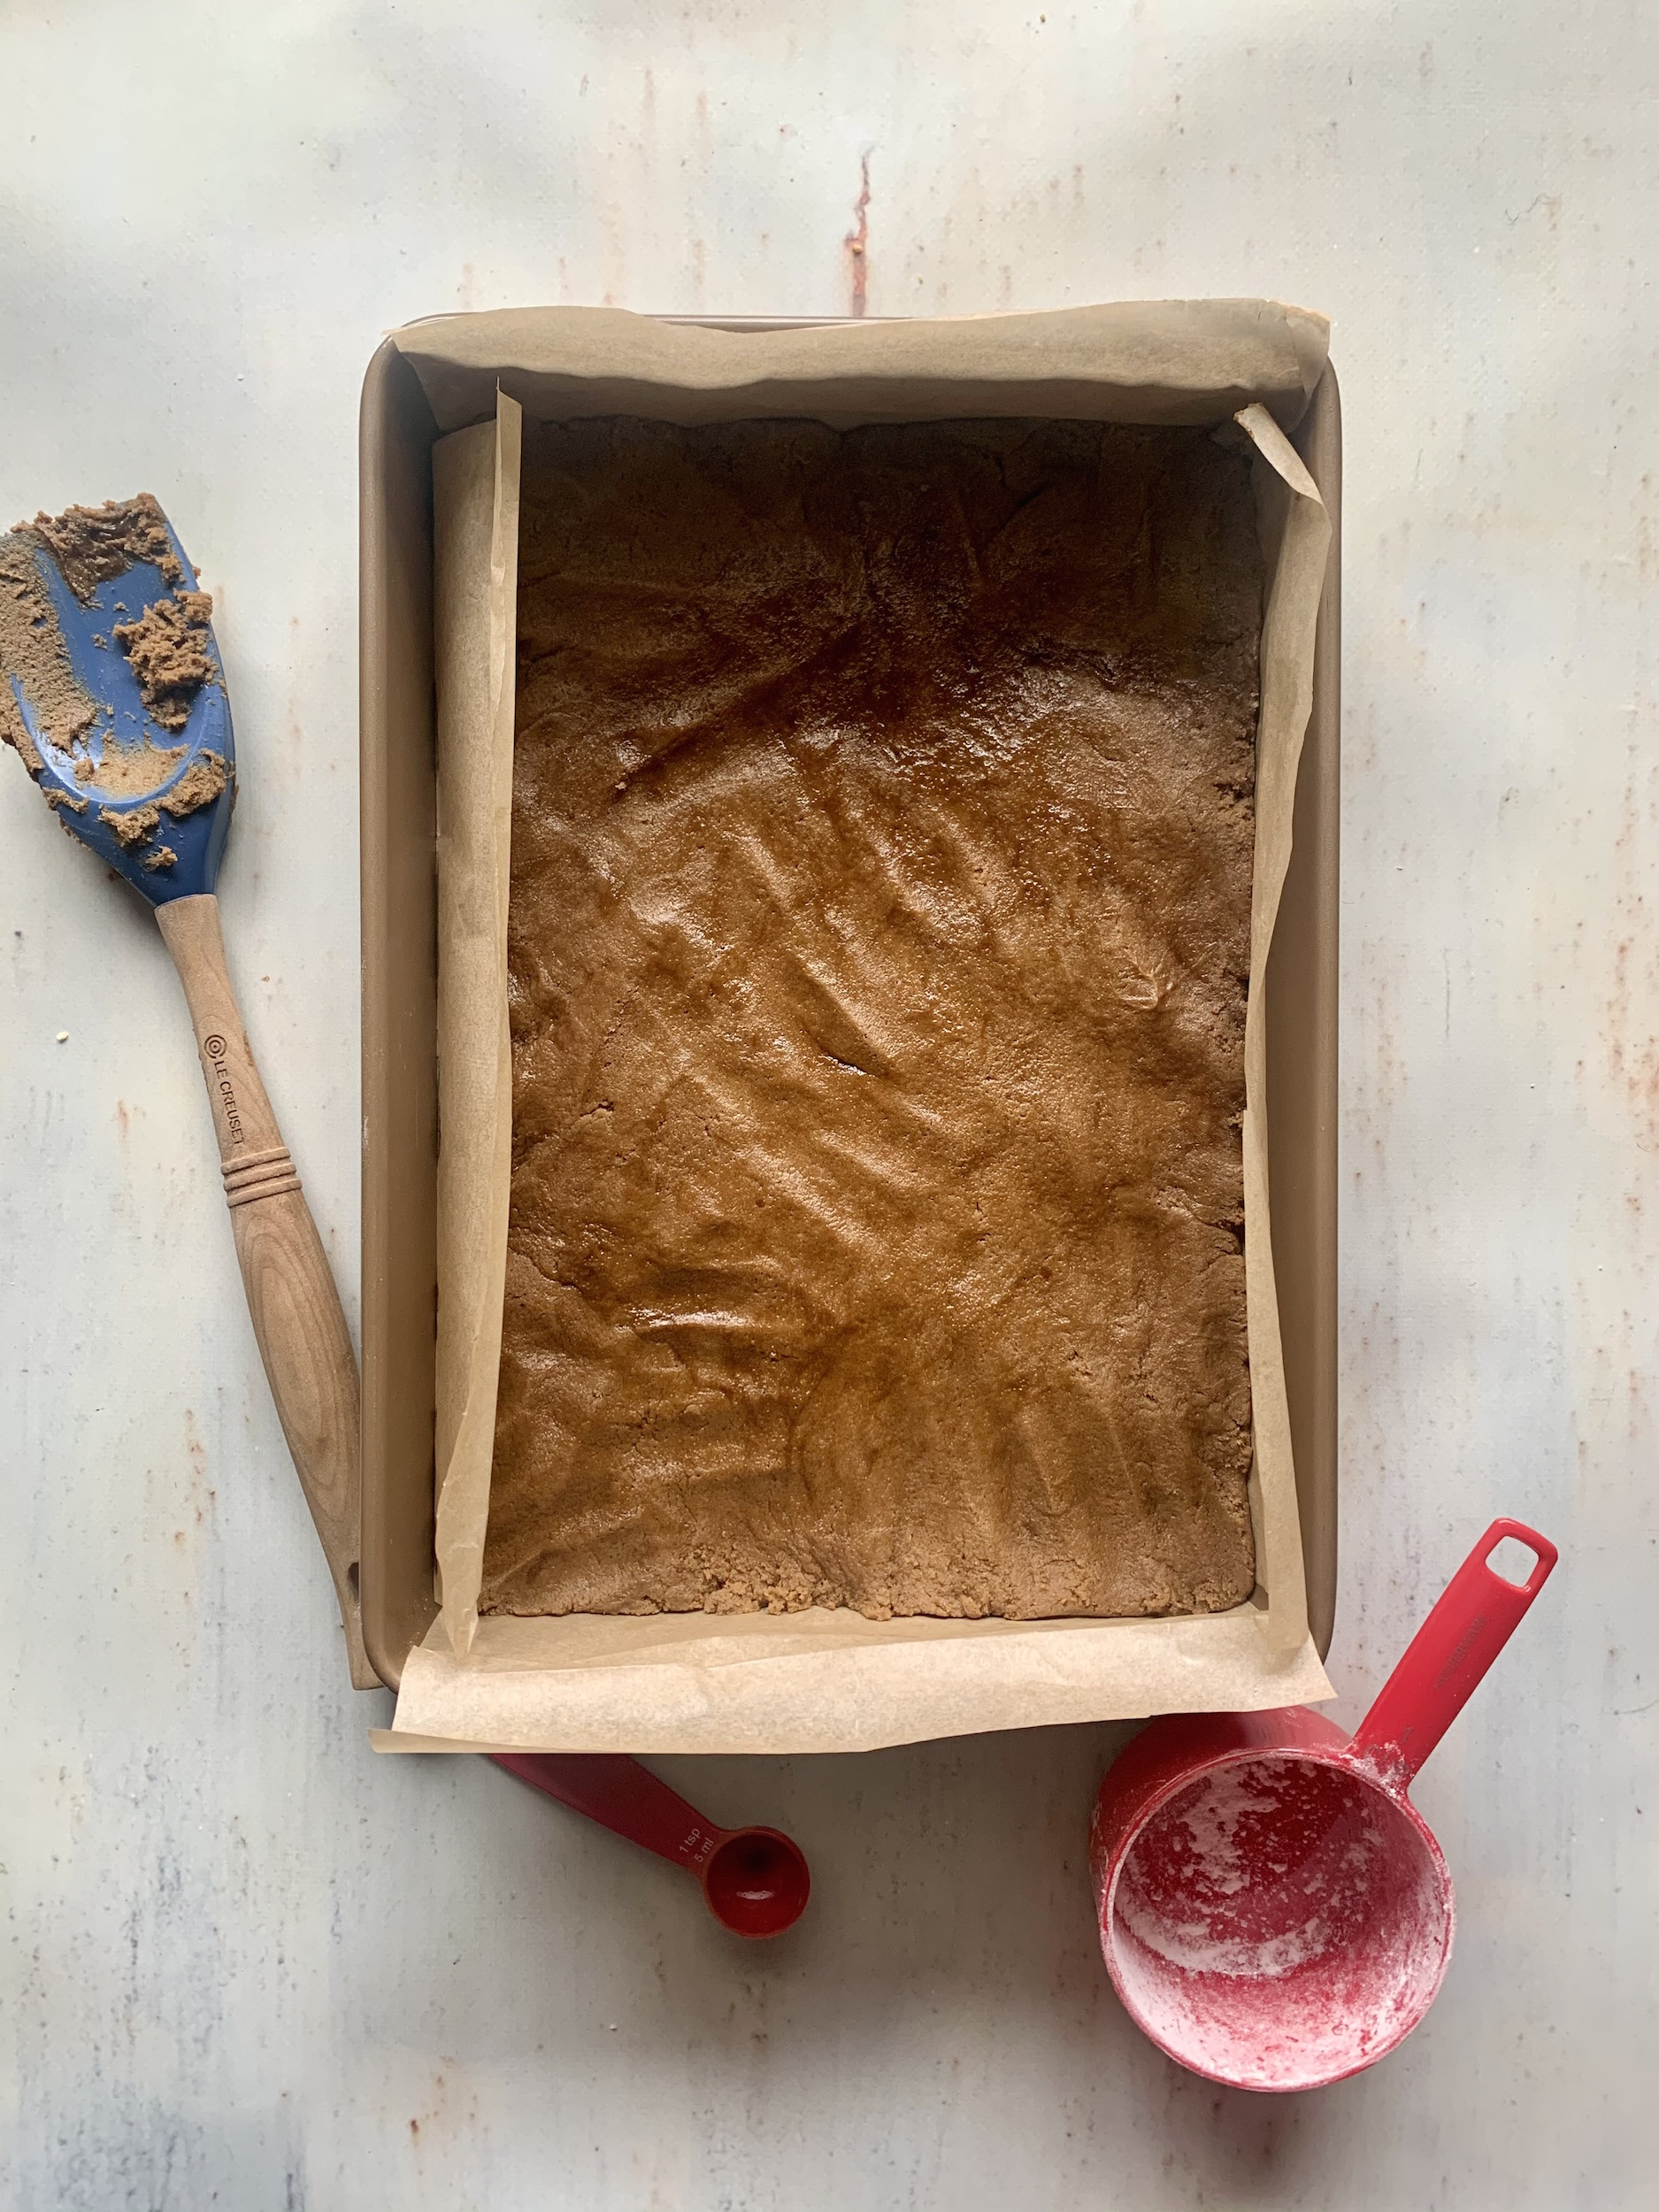 metal baking pan lined with parchment paper and raw gingerbread cookie dough pressed into pan. blue spatula and red measuring cup in the background